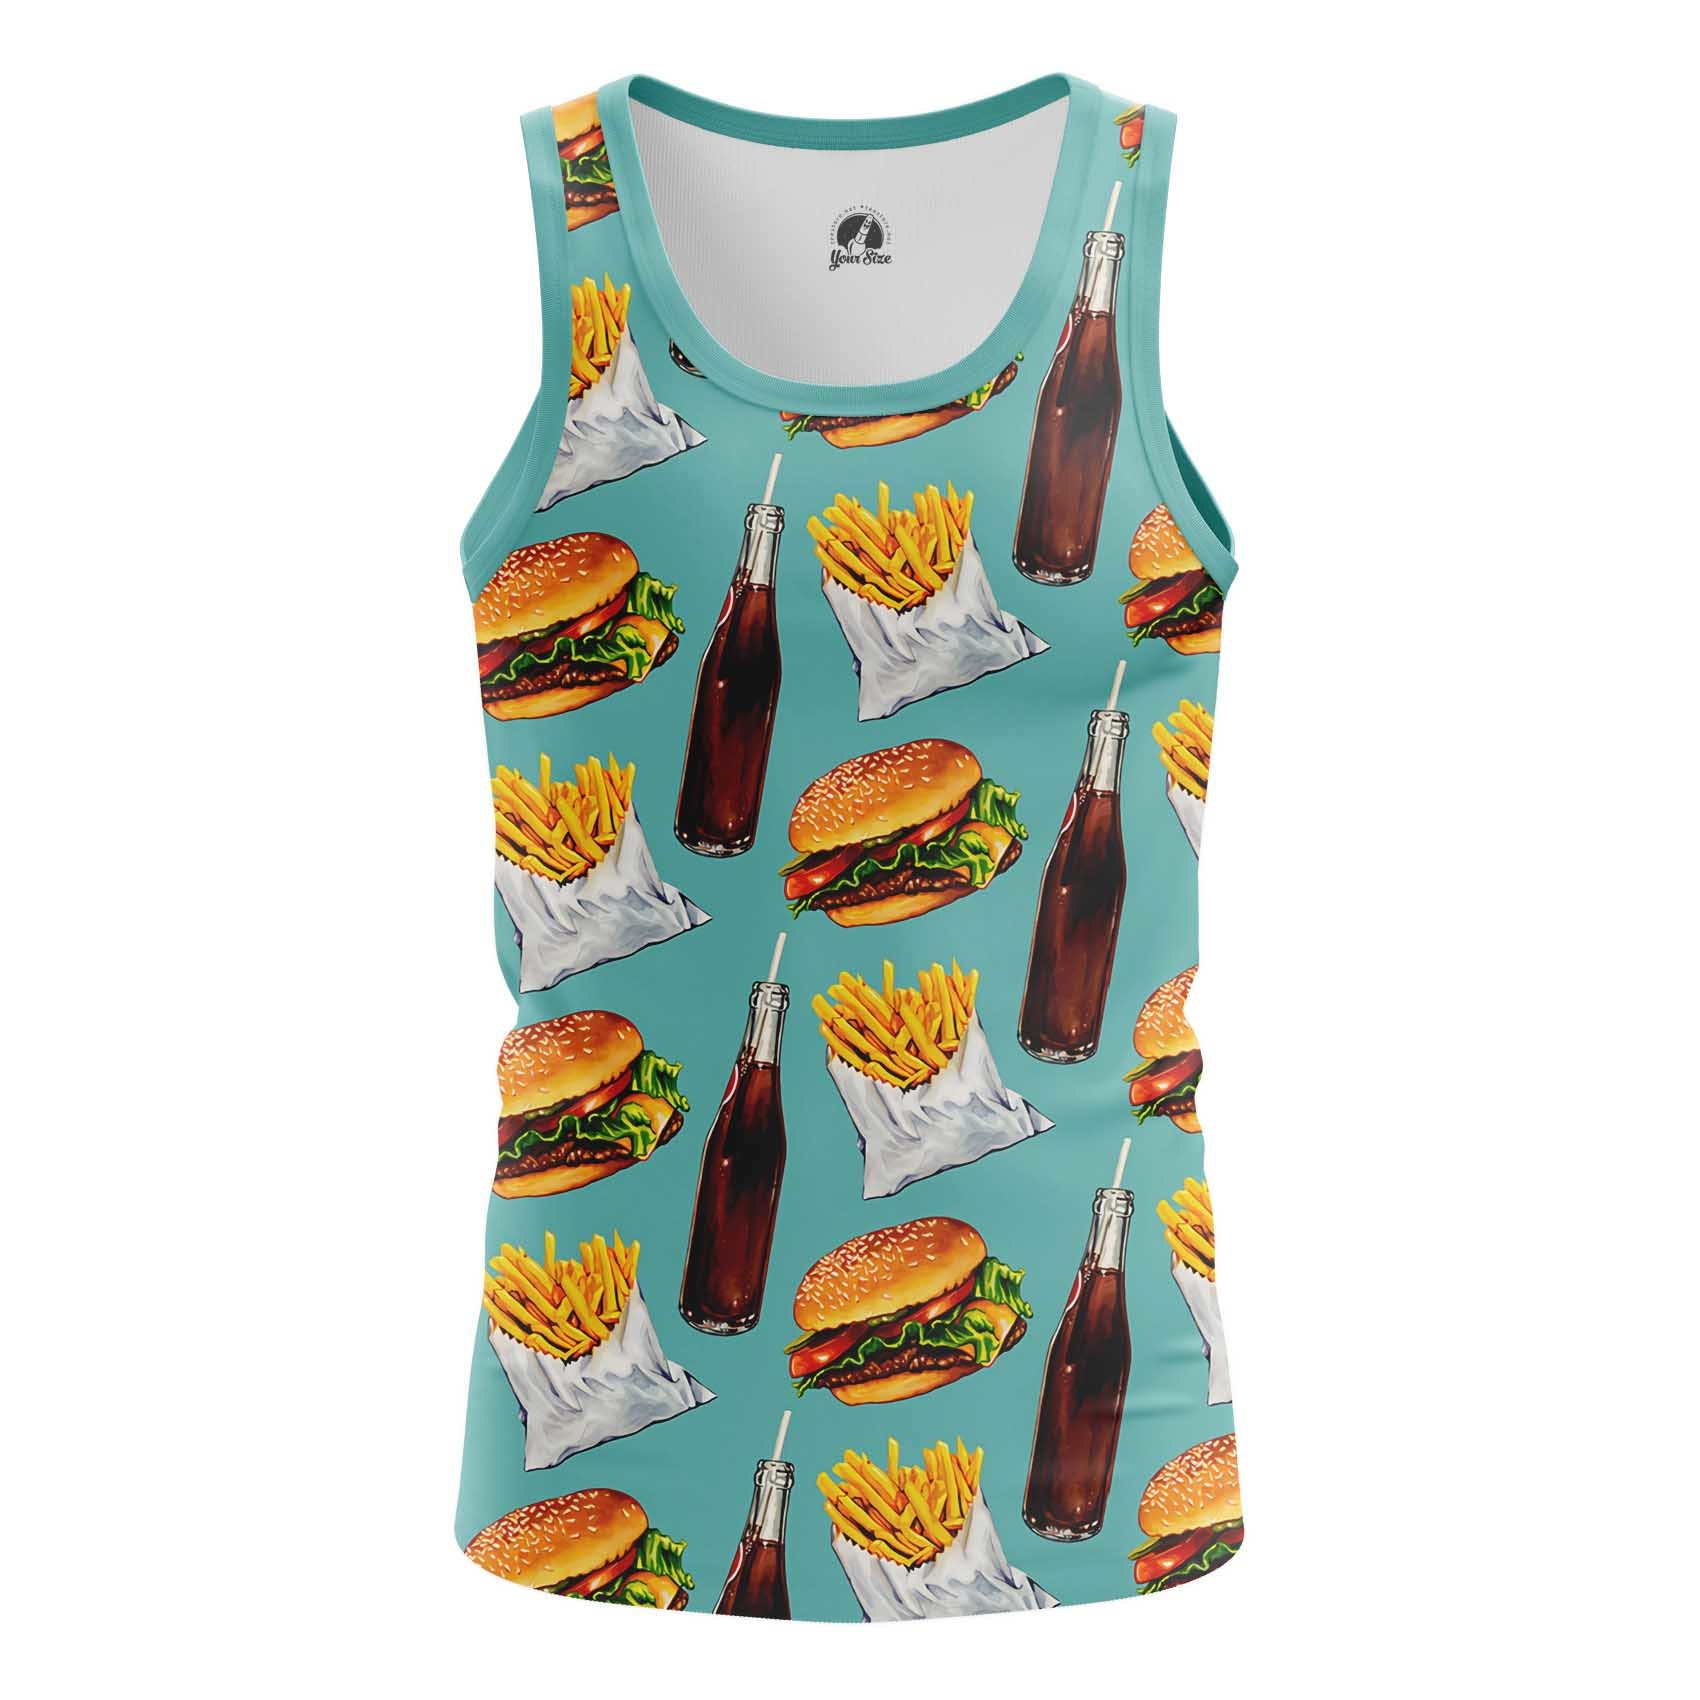 Collectibles T-Shirt Fast Food Burger Coke Pattern